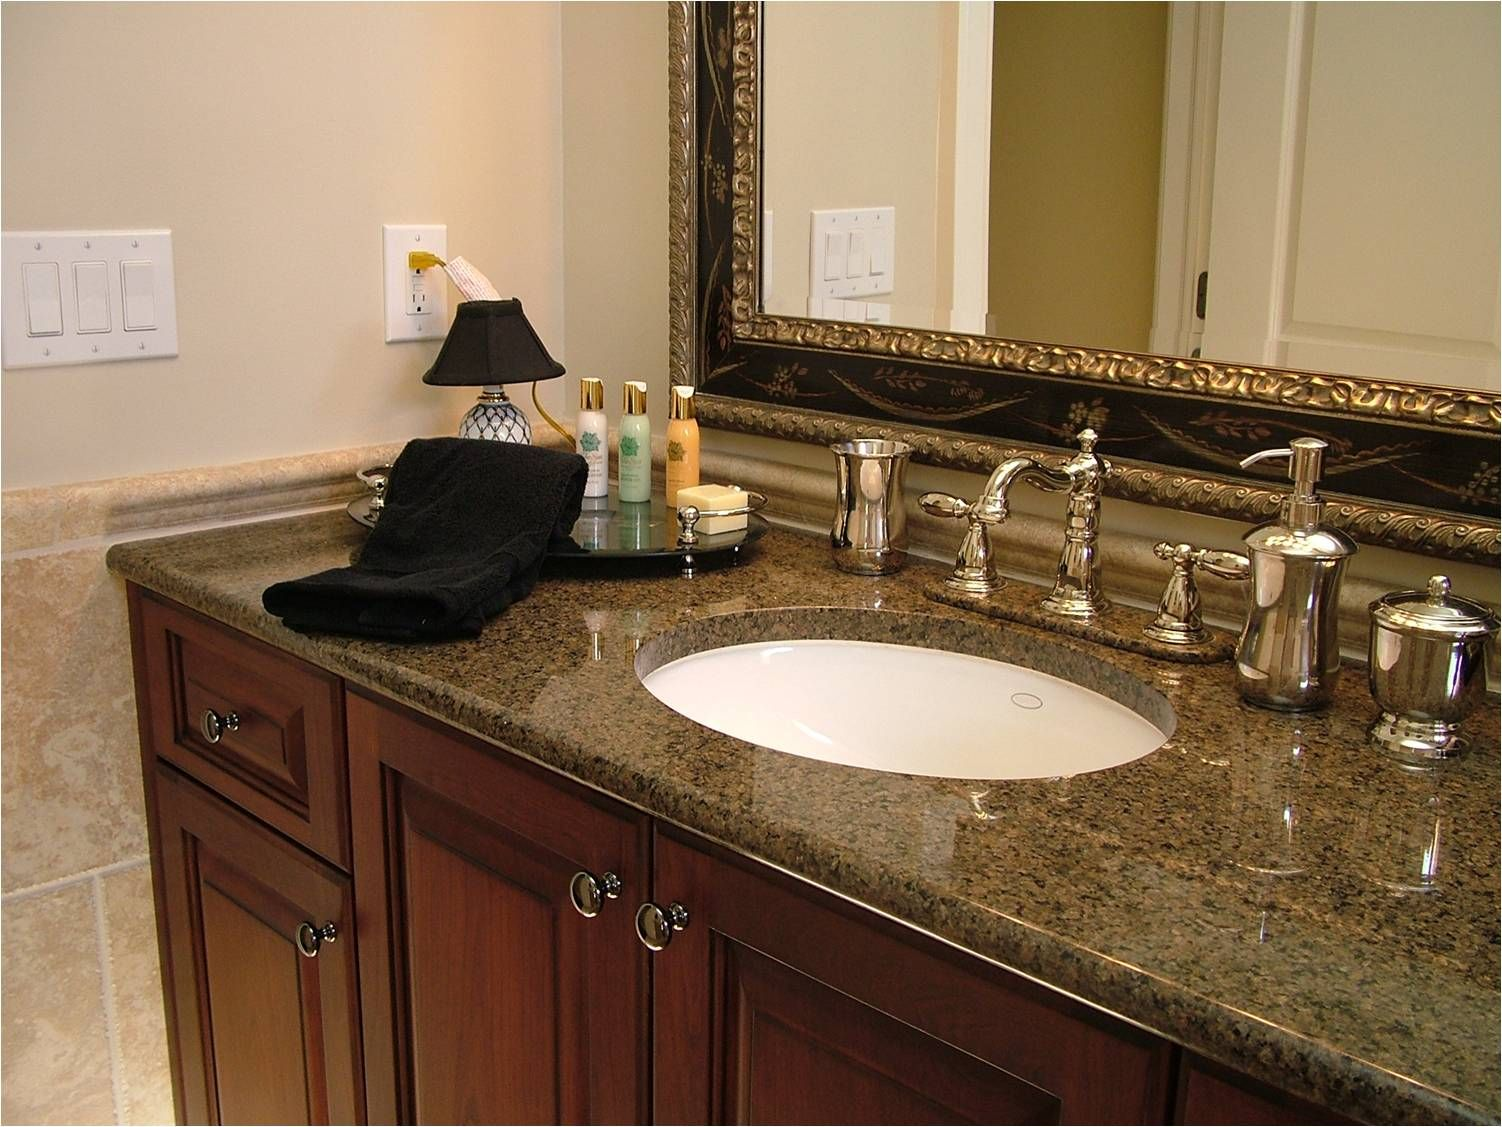 Bathroom Vanities Virginia Beach dave's granite | natural stone, granite, quartz countertops